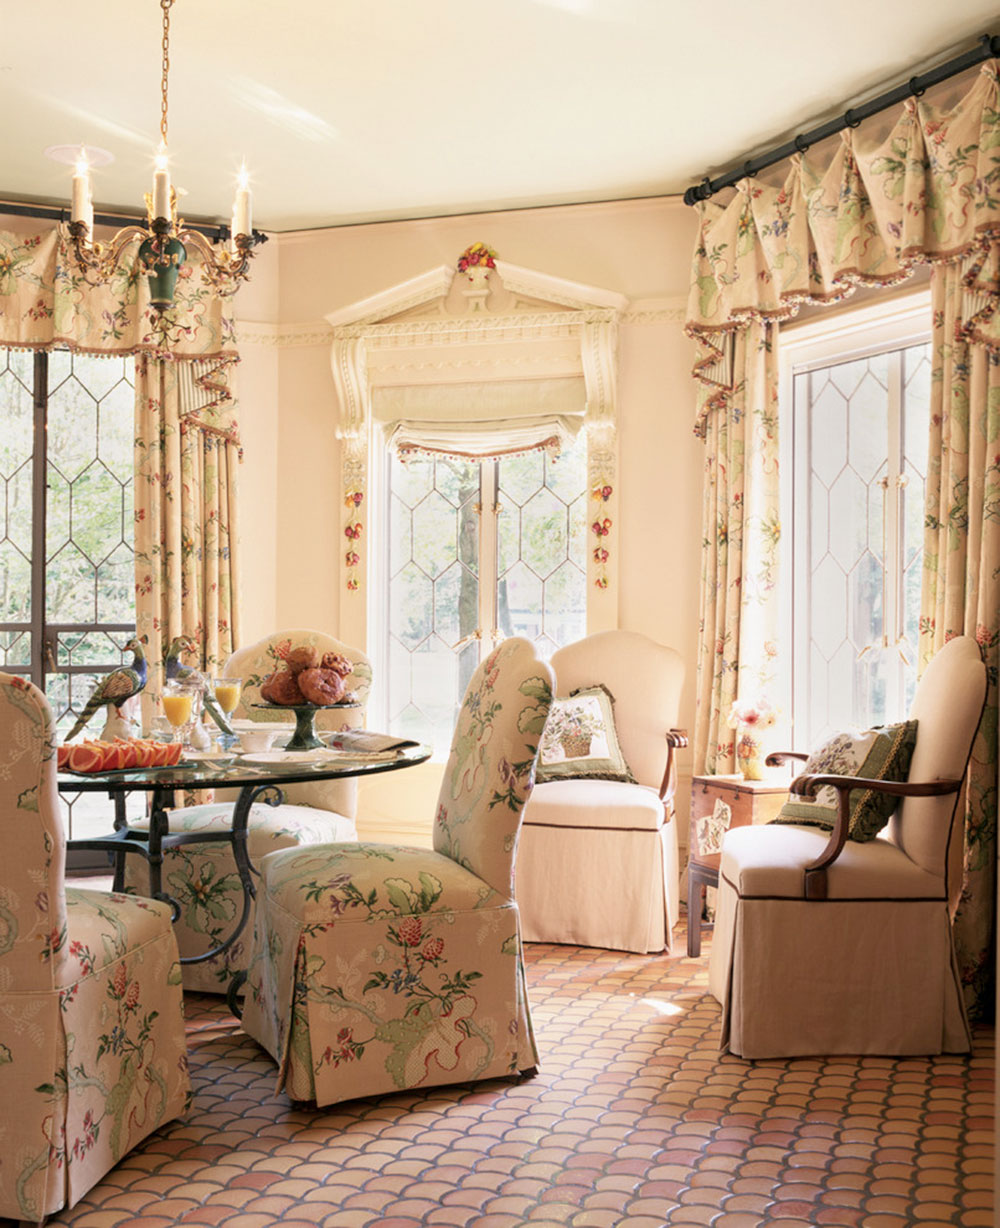 Cottage-Style-Designs-Can-Look-Great4 Cottage-Style Designs kan se bra ut